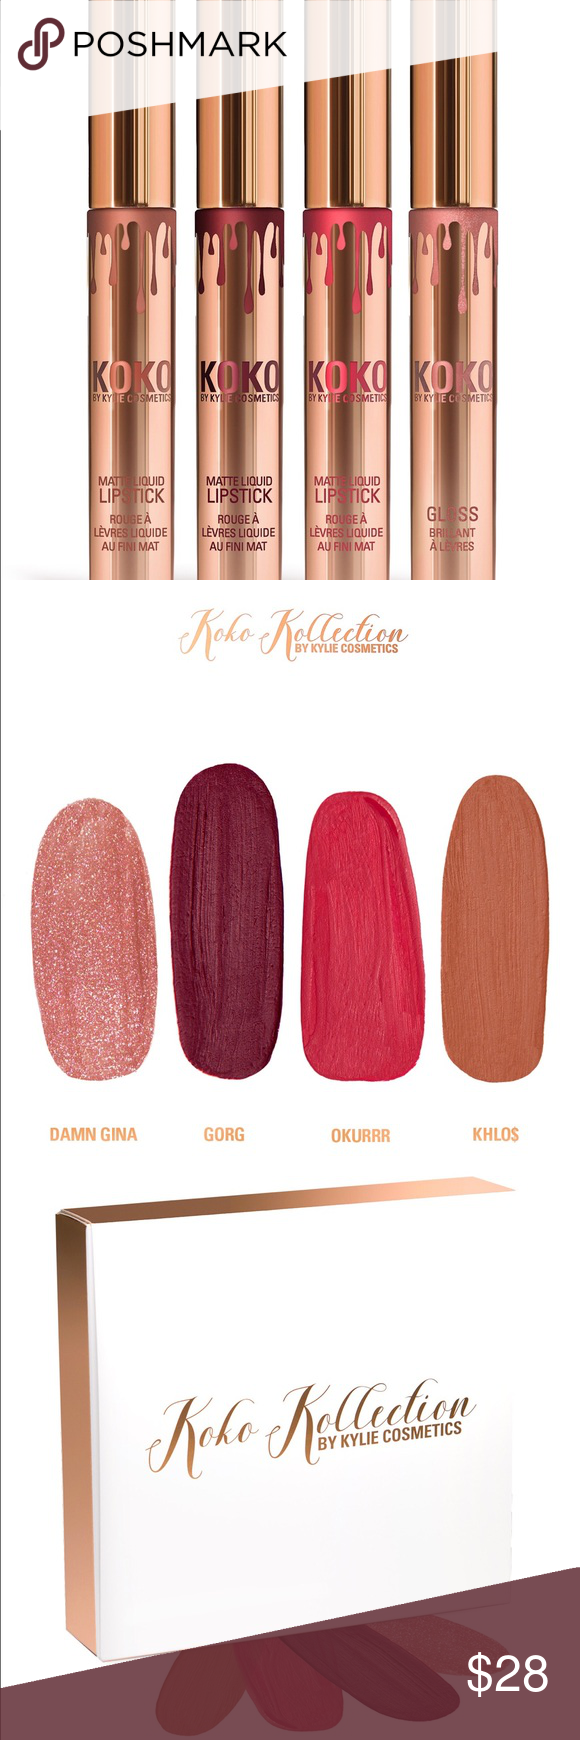 KHLO$ KoKo Kollection NWT Authentic Koko Kollection Matte